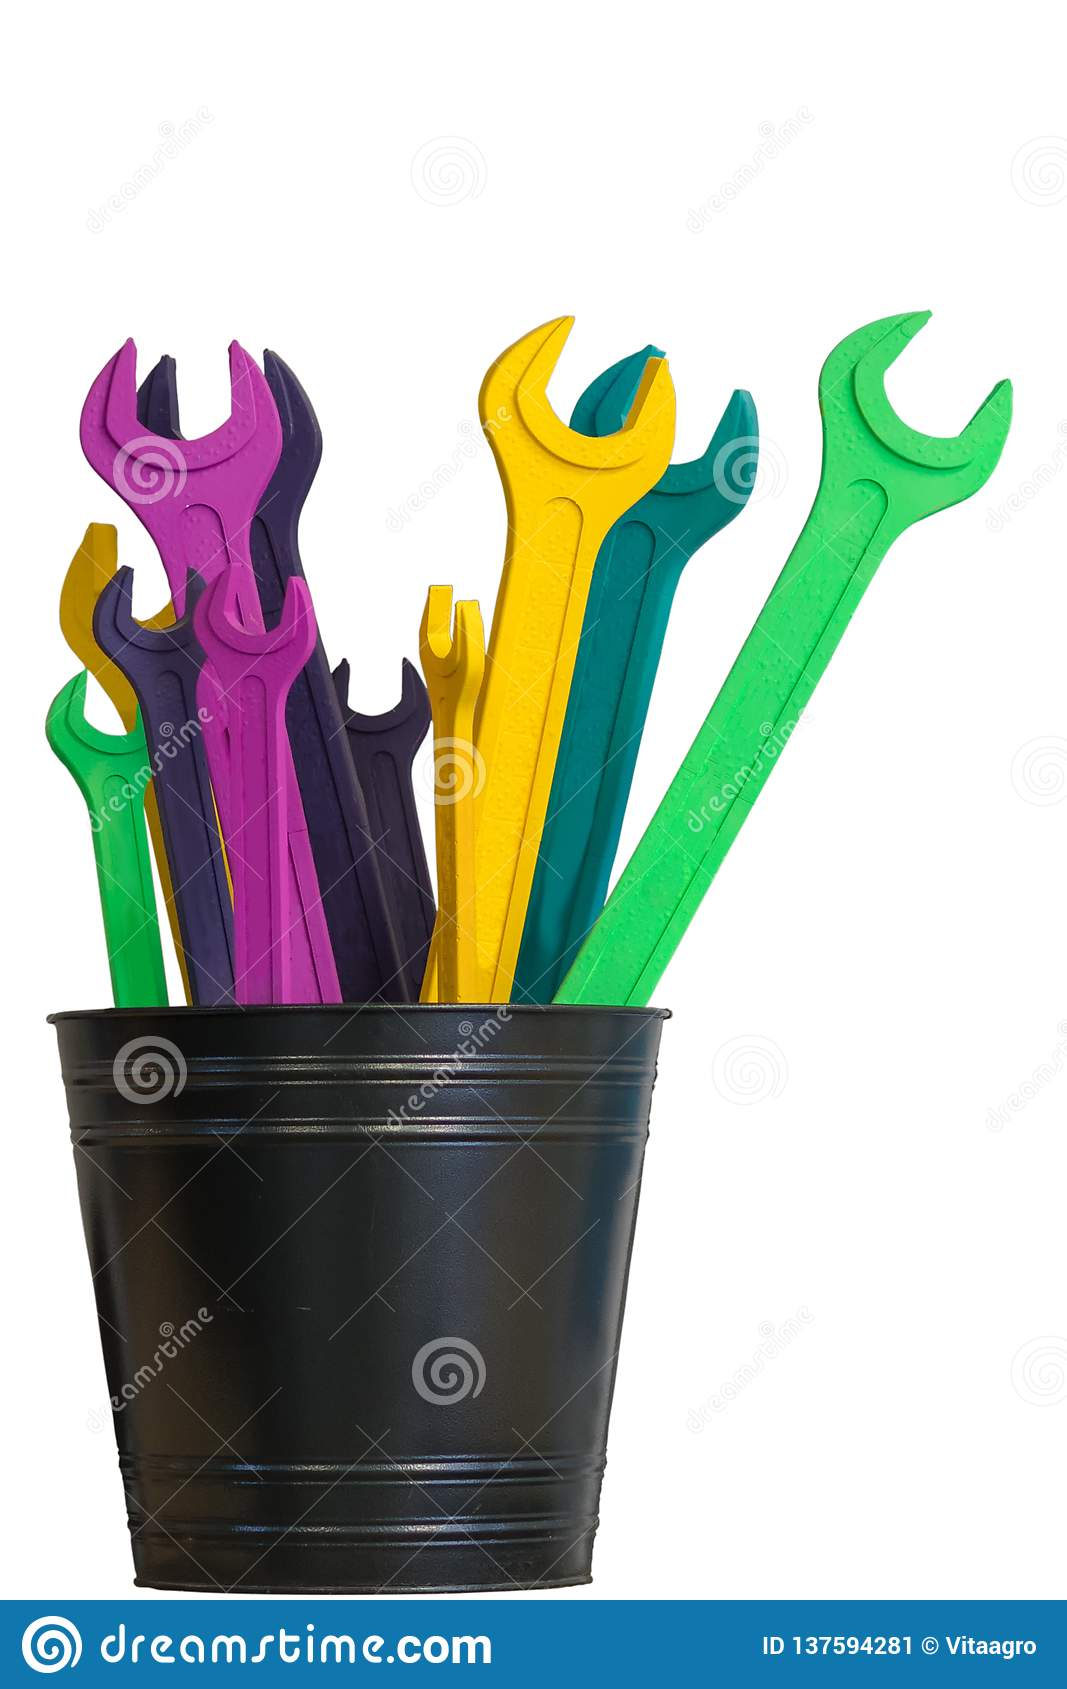 Several colored open end wrenches stand in a black bucket isolated on a white background